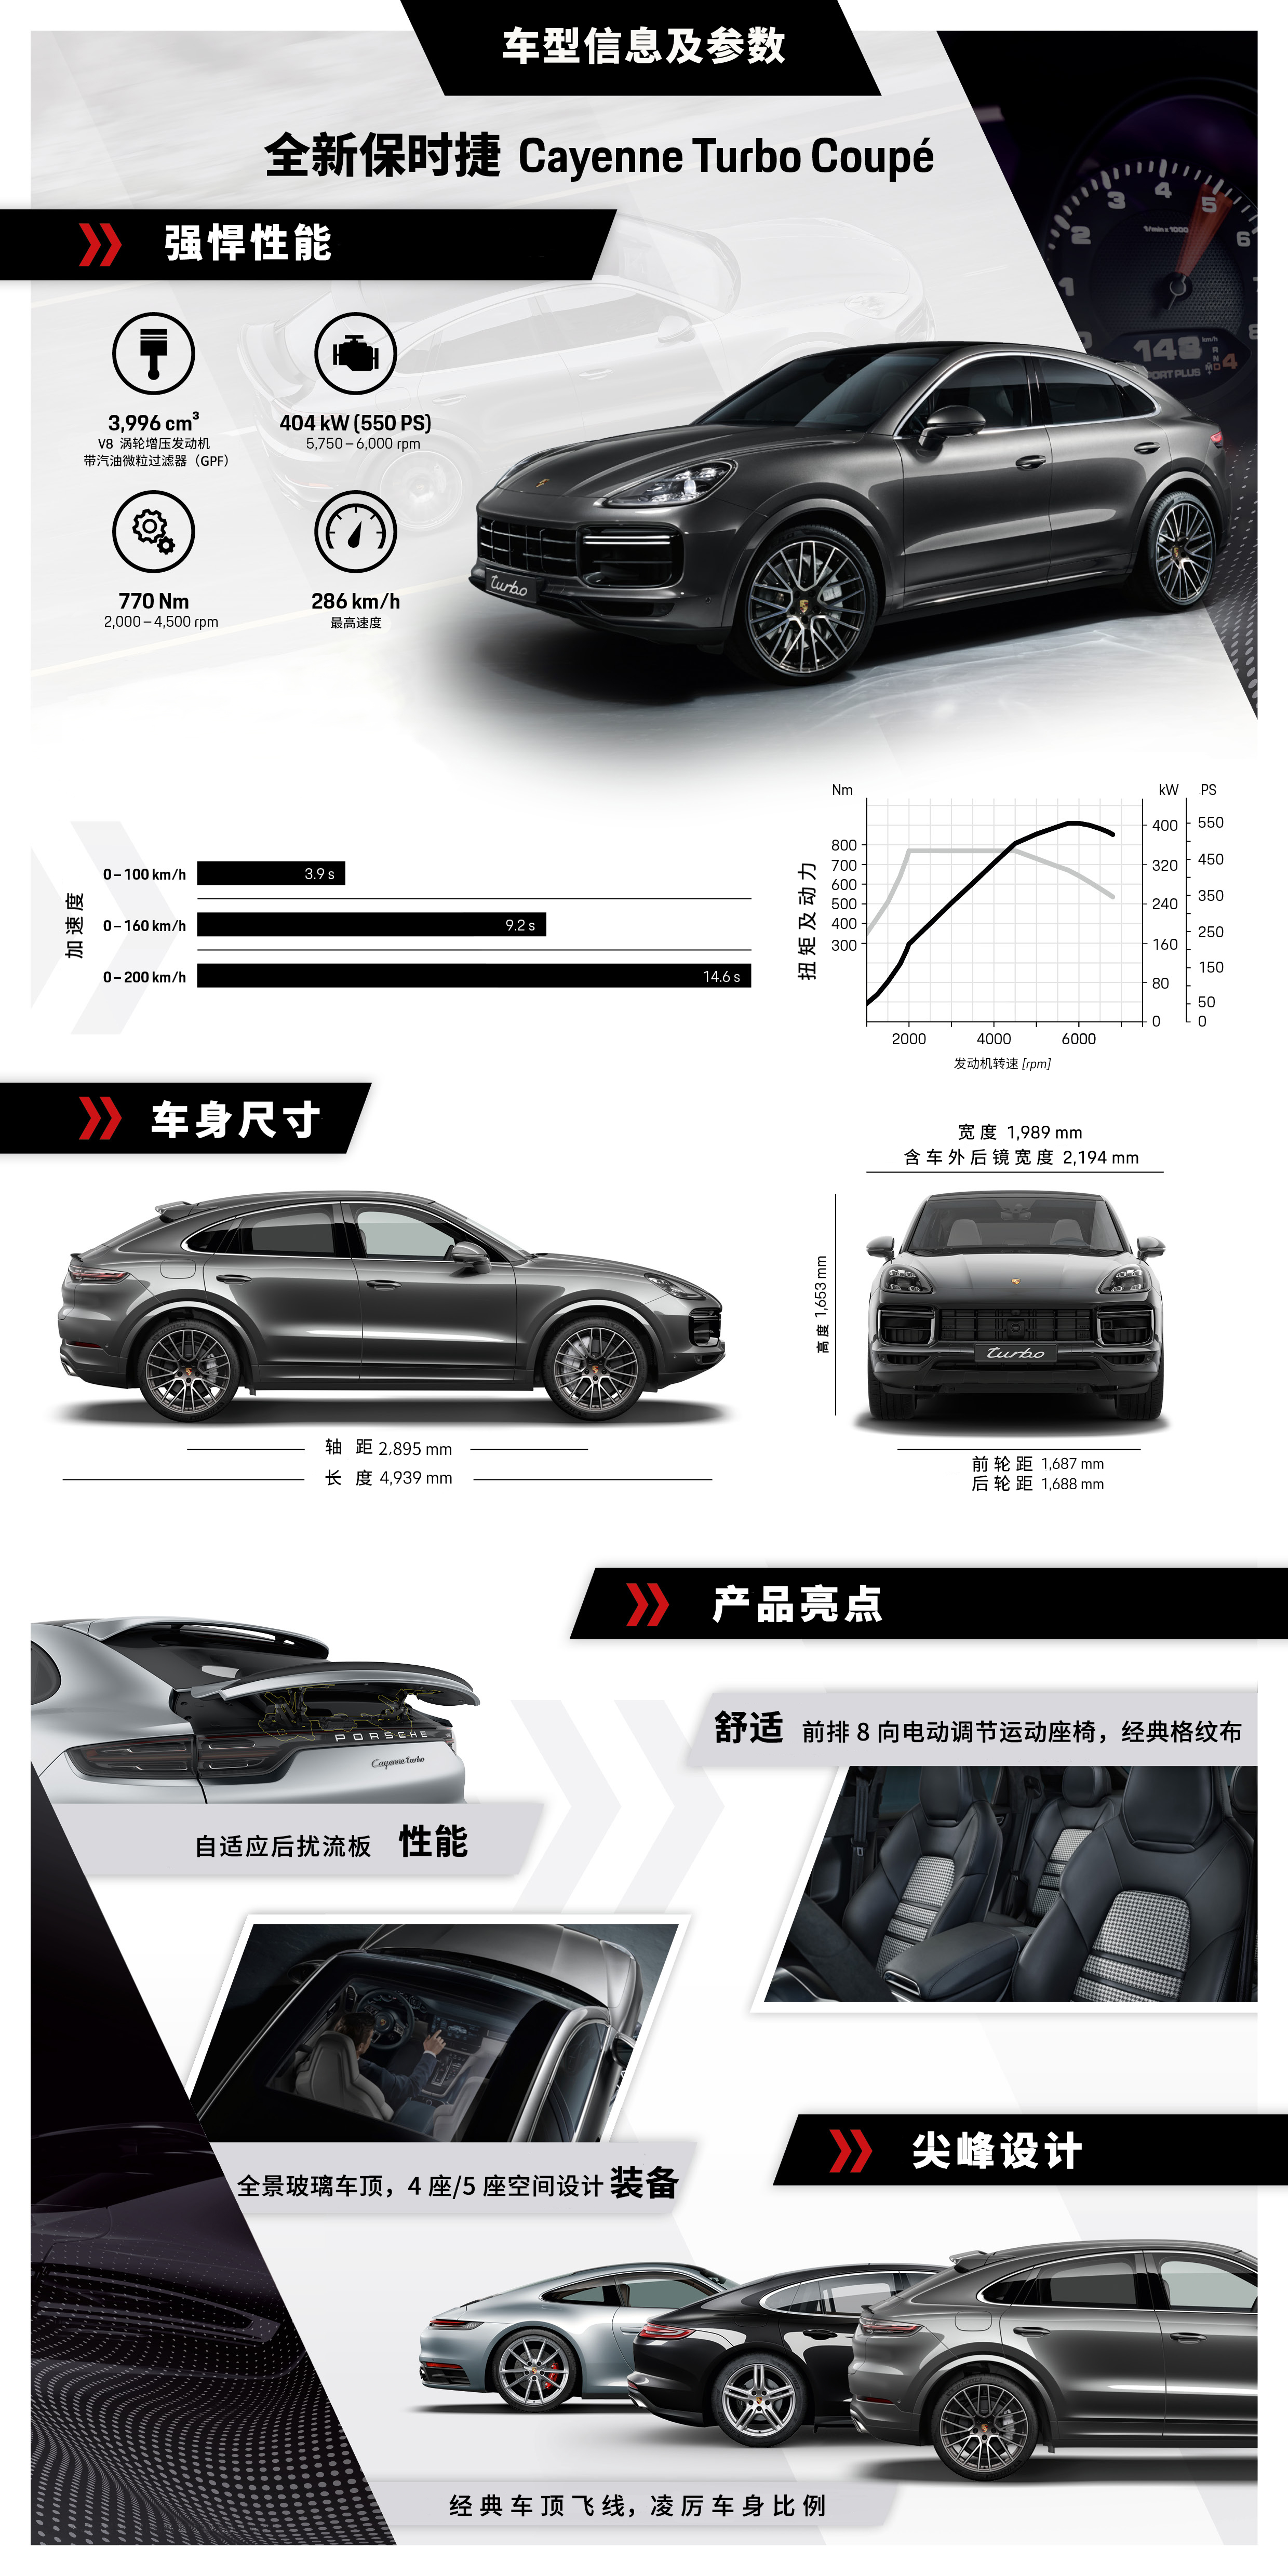 Cayenne Turbo Coupe 产品参数